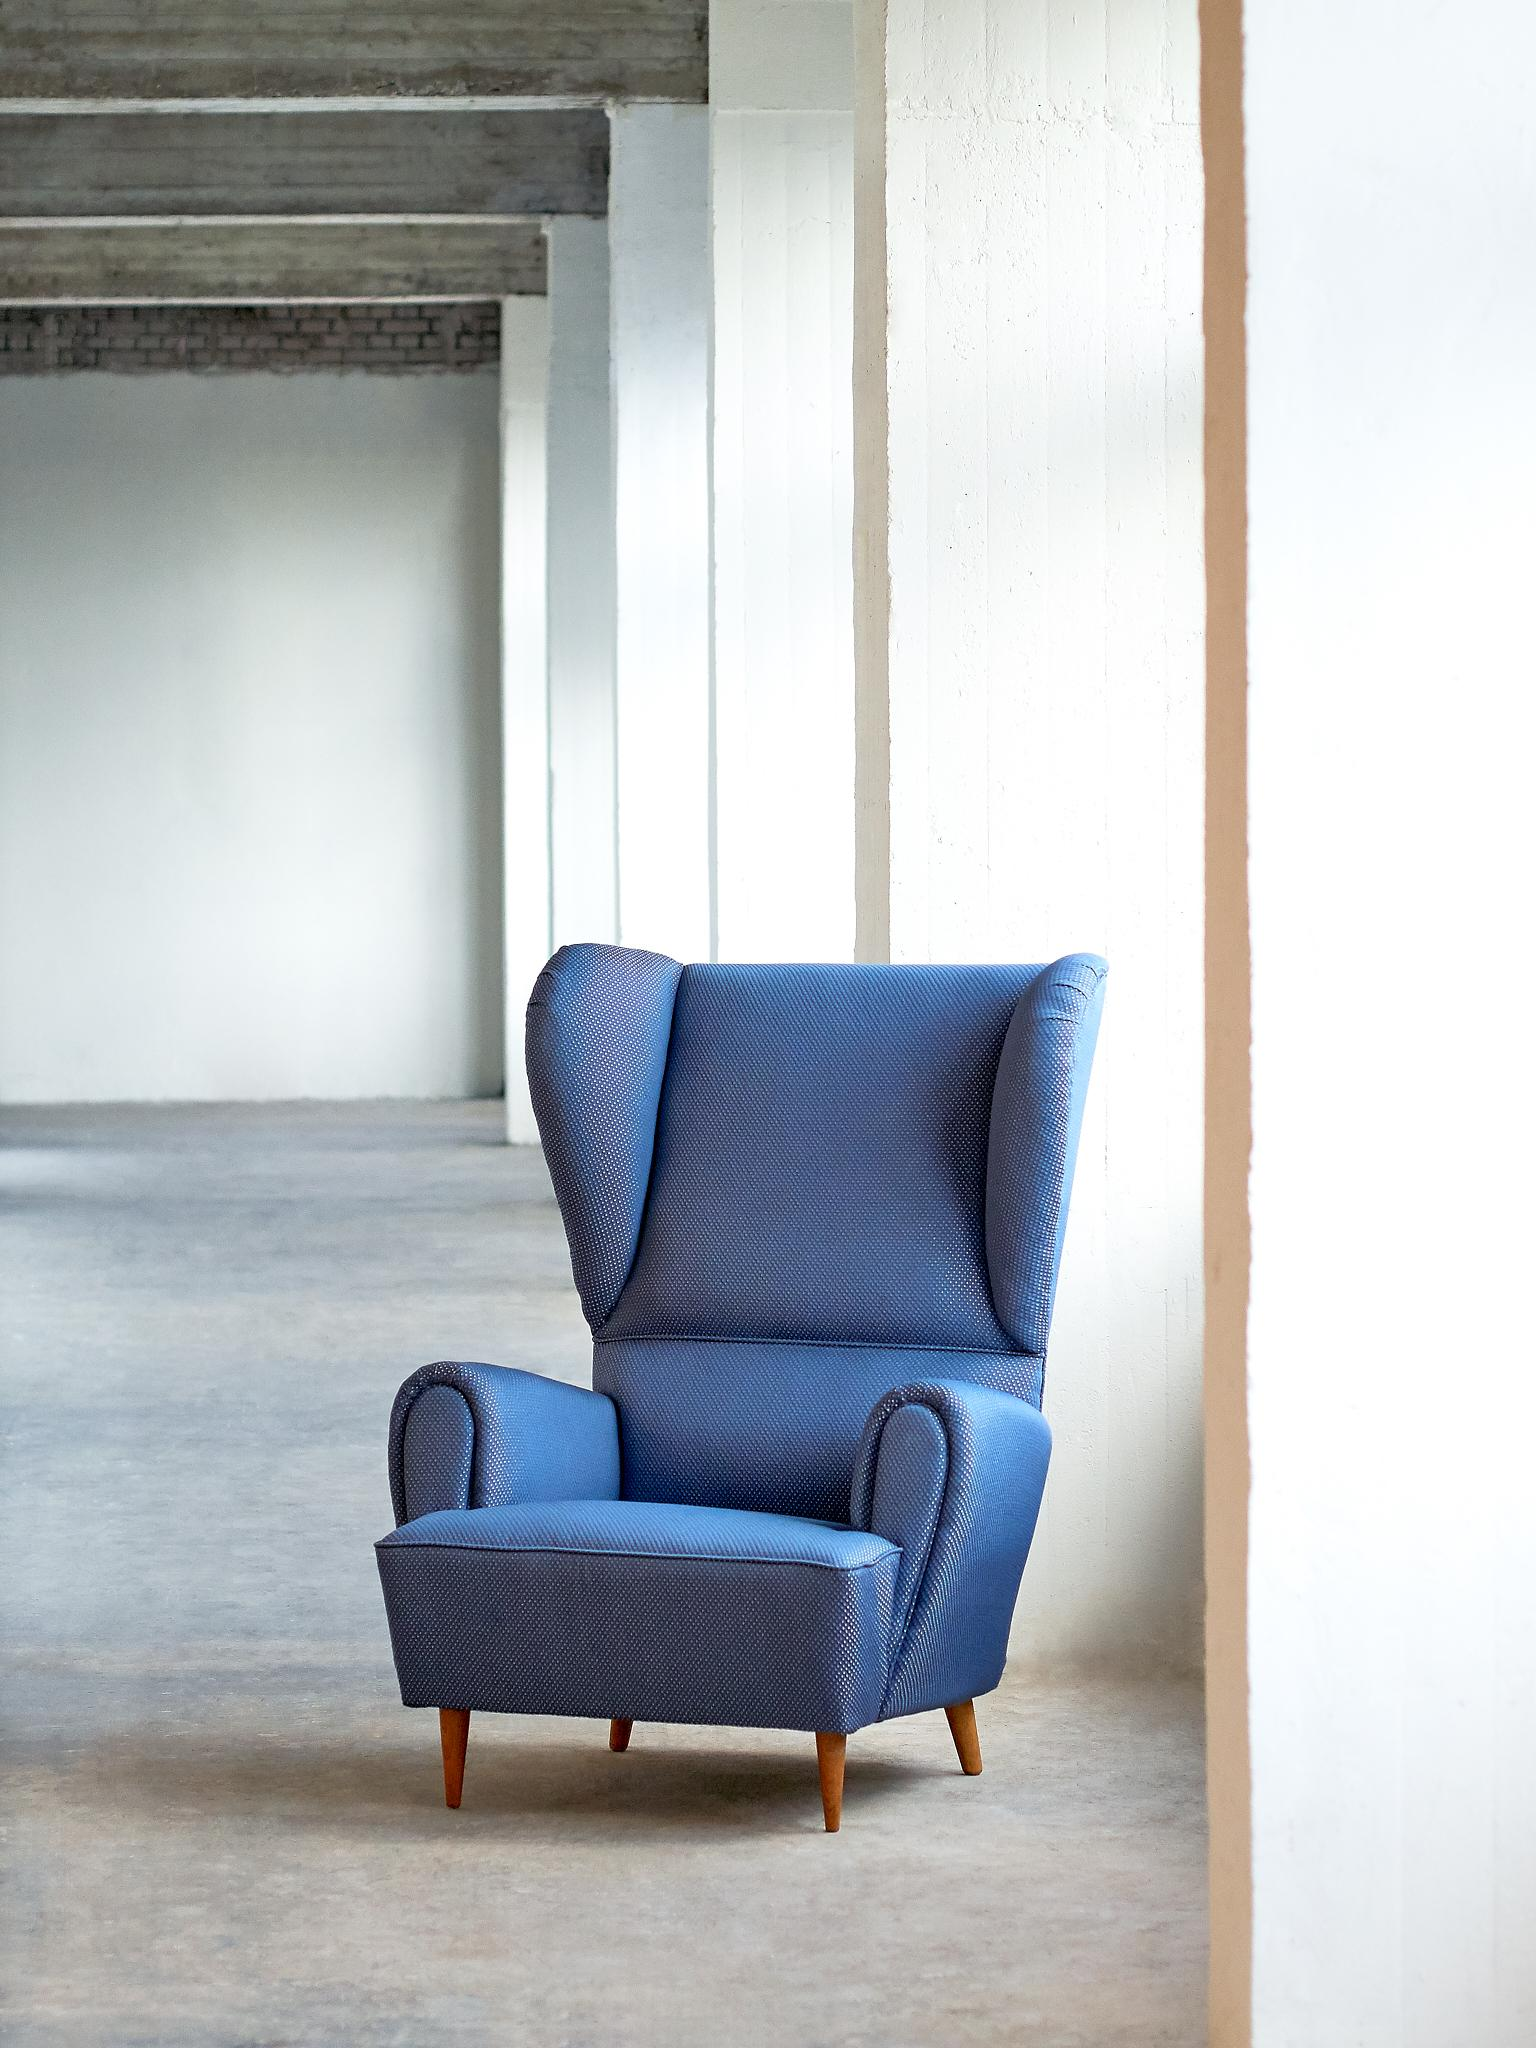 Paolo Buffa High Wingback Chair Upholstered In Blue Rubelli Fabric Italy 1940s